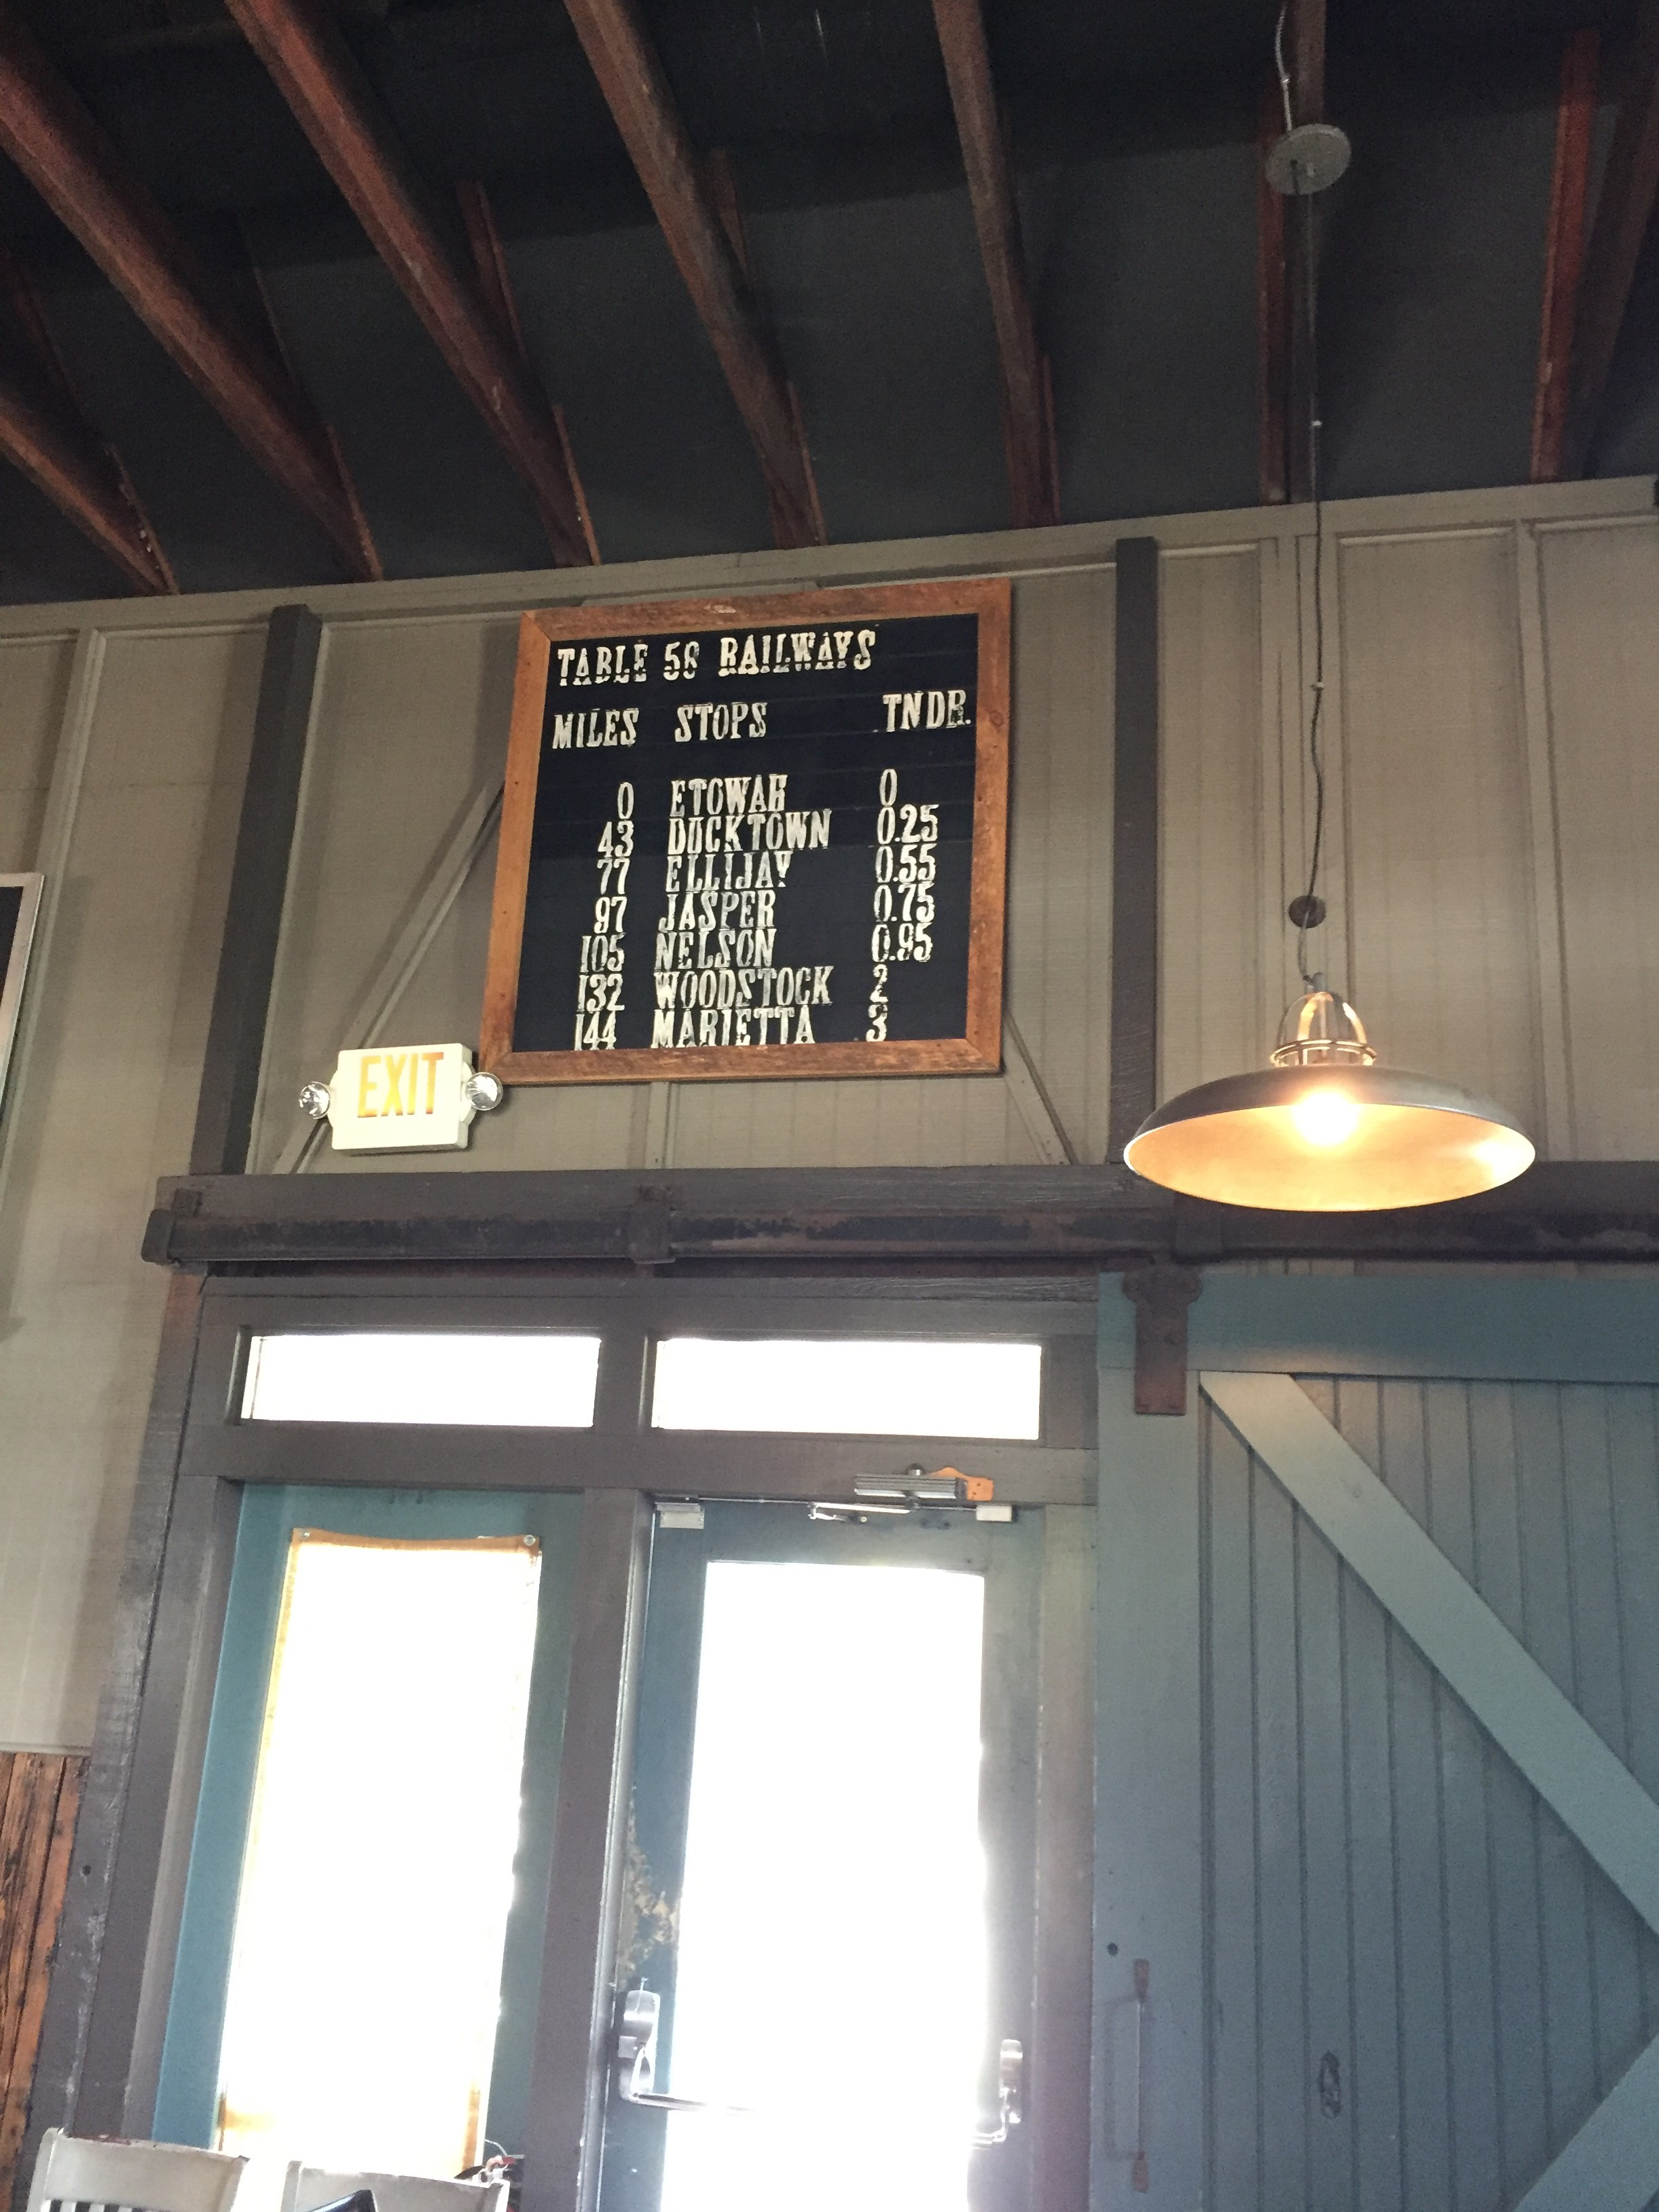 Original sign with actual pricing of rail line tickets for the time.